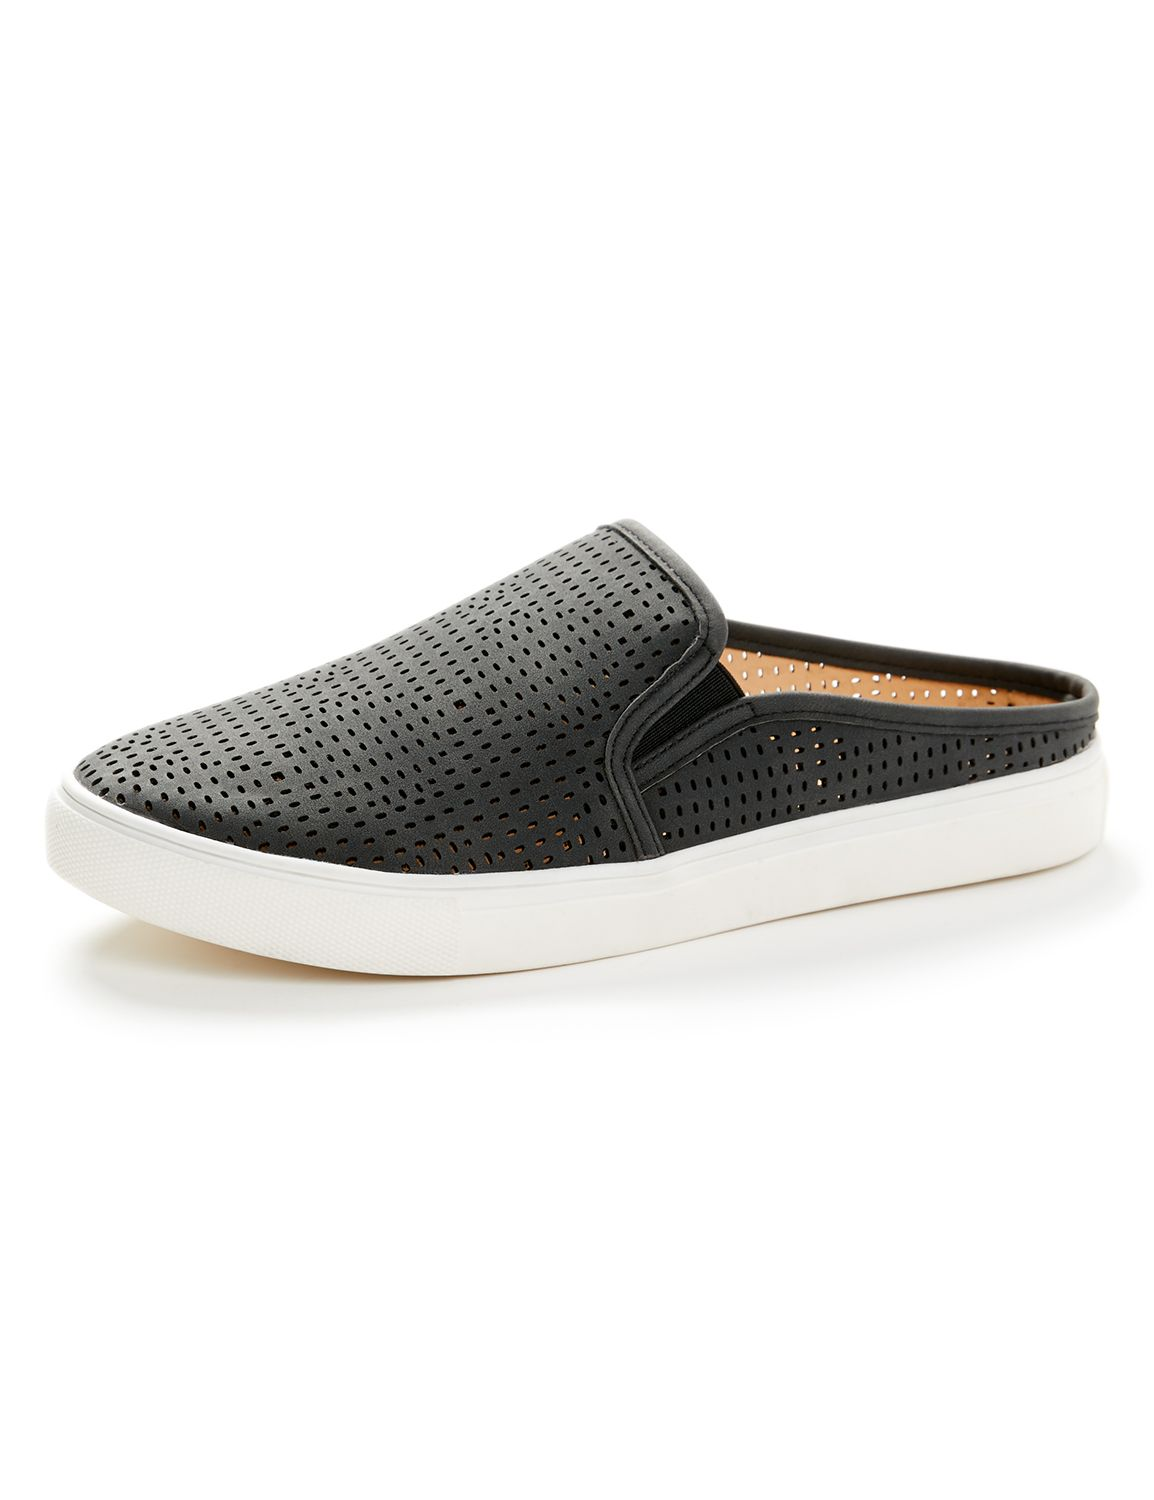 Good Soles Slip-On Sneaker Perf Slip On Sneaker M24813 MP-300097775